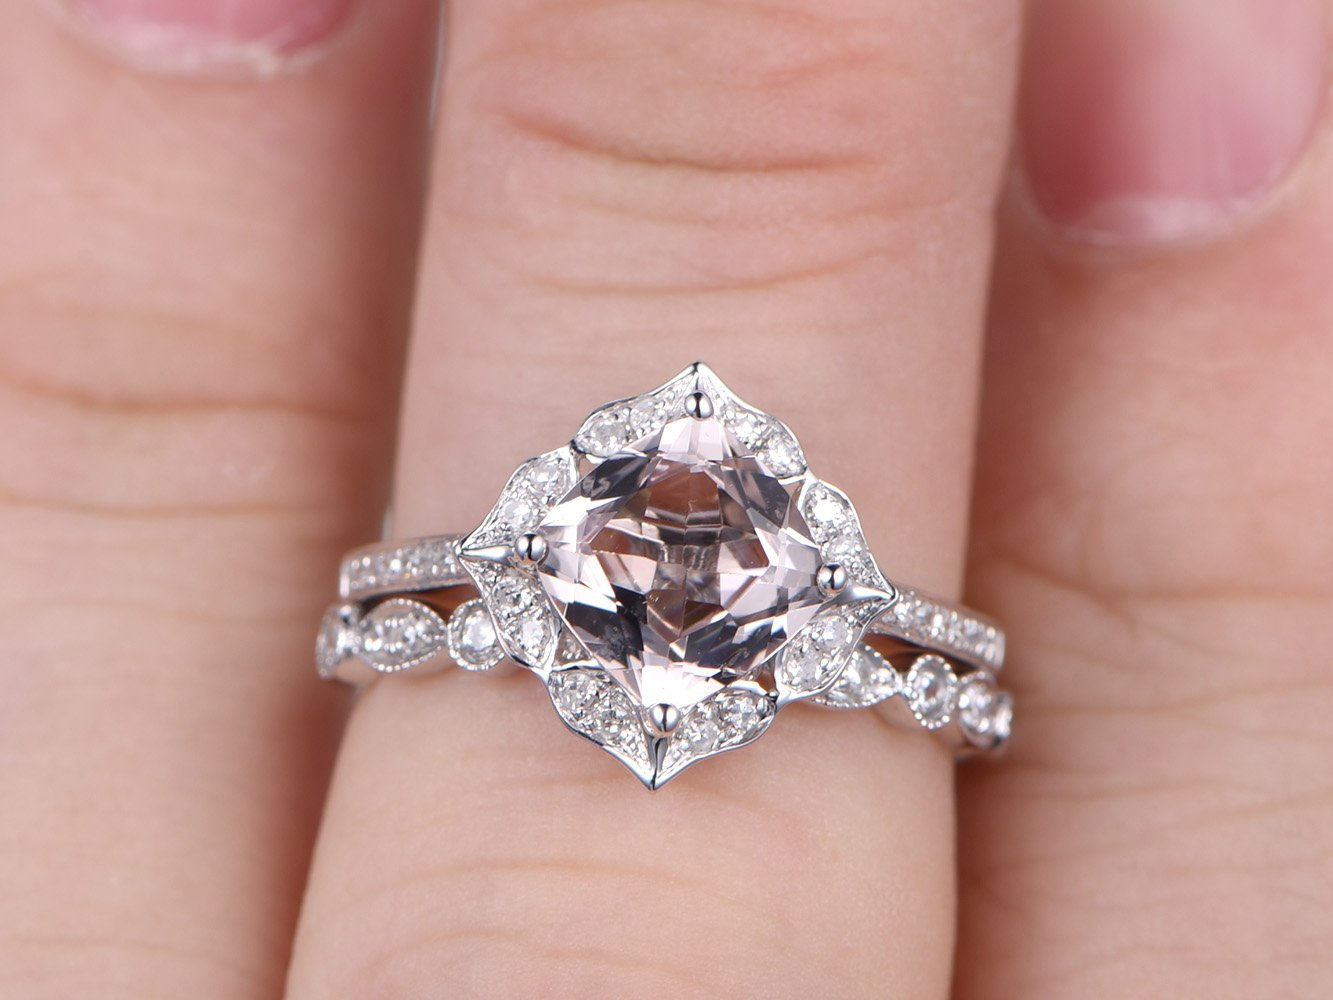 Amazon.com: 2pcs Morganite Engagement Ring Sets,7x7mm Cushion Cut ...